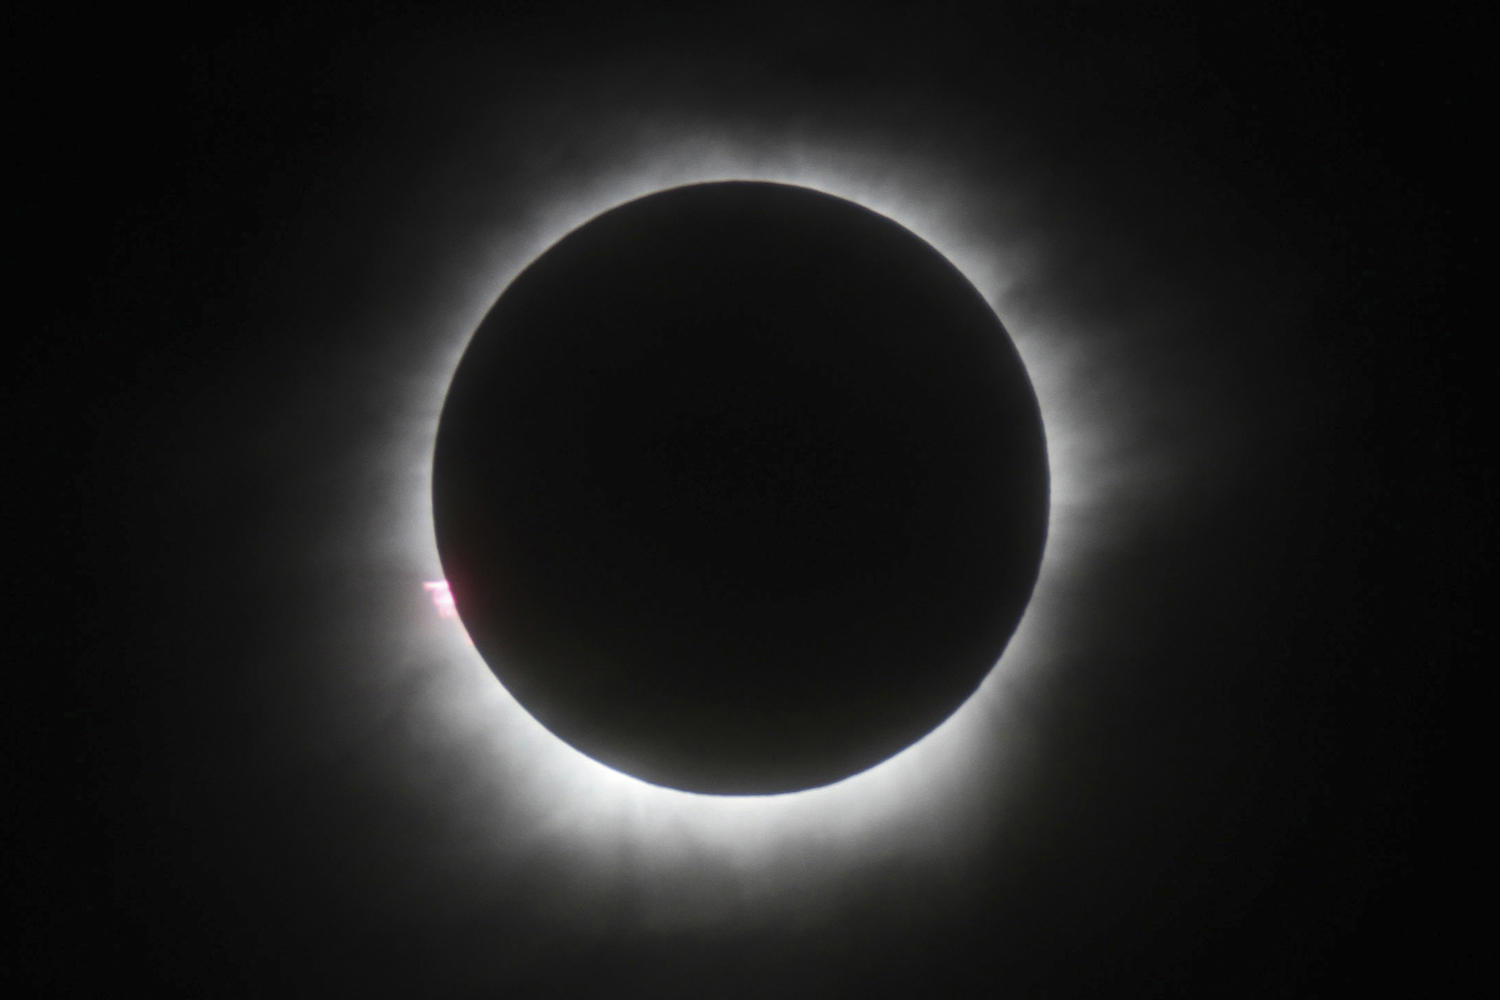 United Kingdom will see partial solar eclipse for 40 minutes